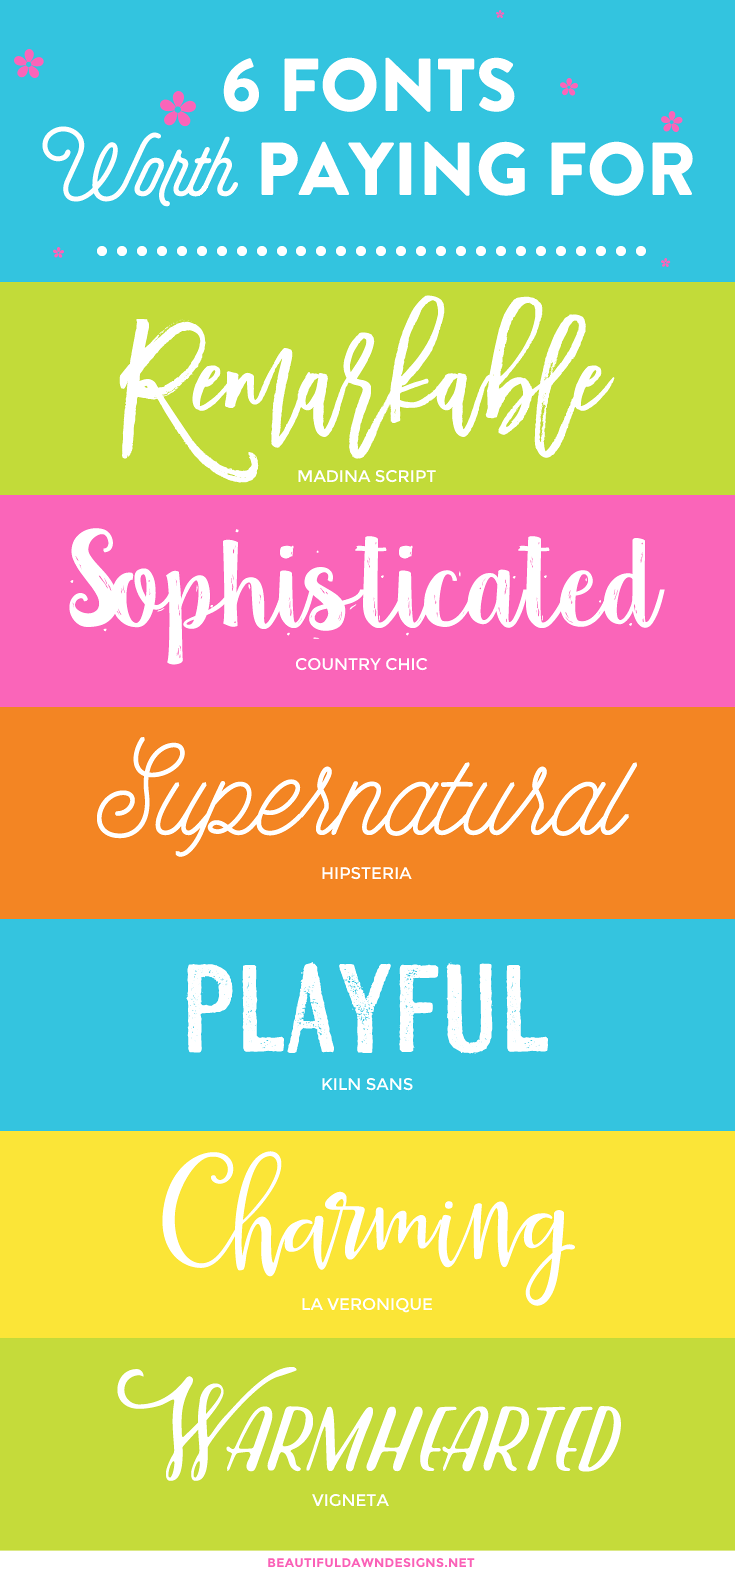 6 fonts worth paying for